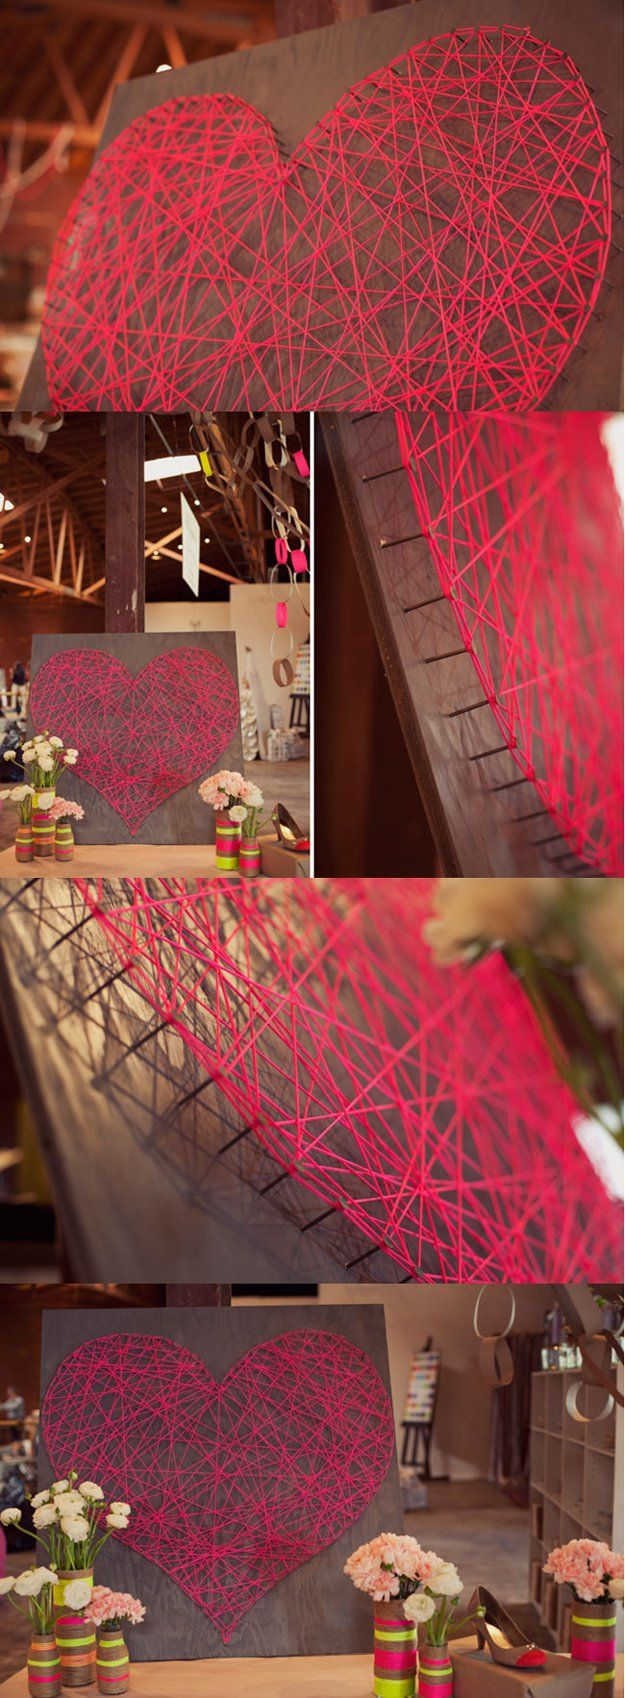 Have you ever wondered how to make string art crafts? It's a really cool DIY project that you can play around with. Whether you're following string art patterns or just doing your thing, it's a great room decoration idea you can create anytime.